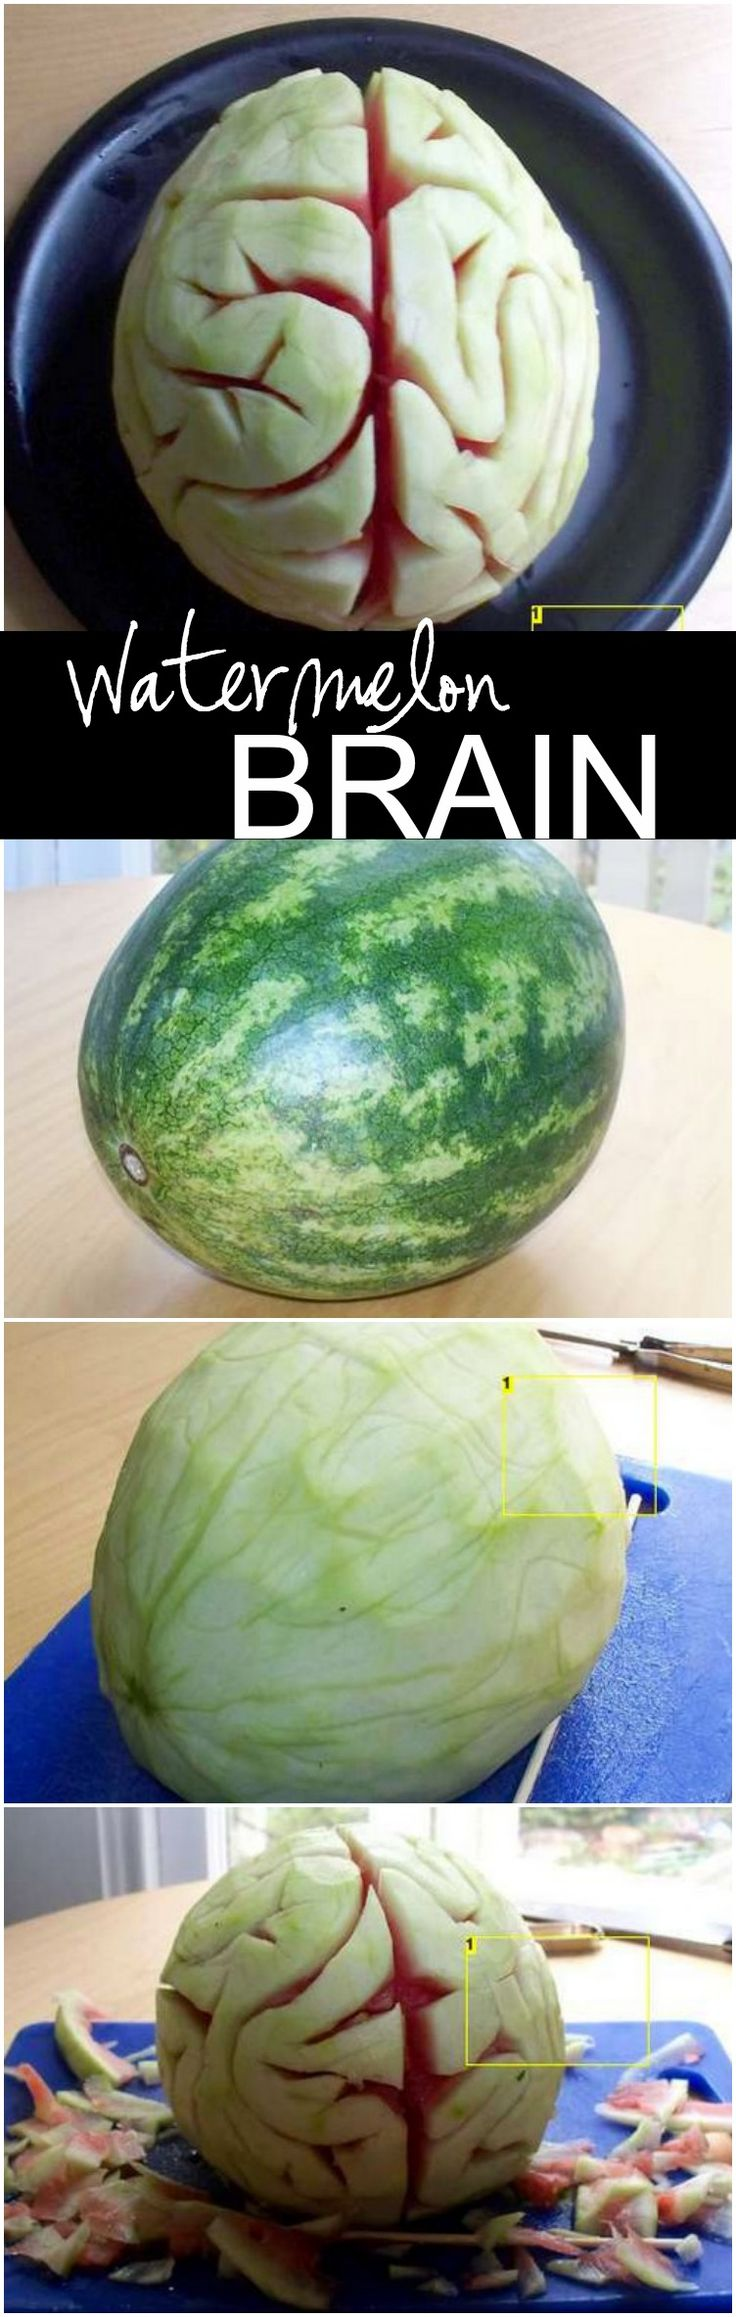 Make a Watermelon Brain for Halloween